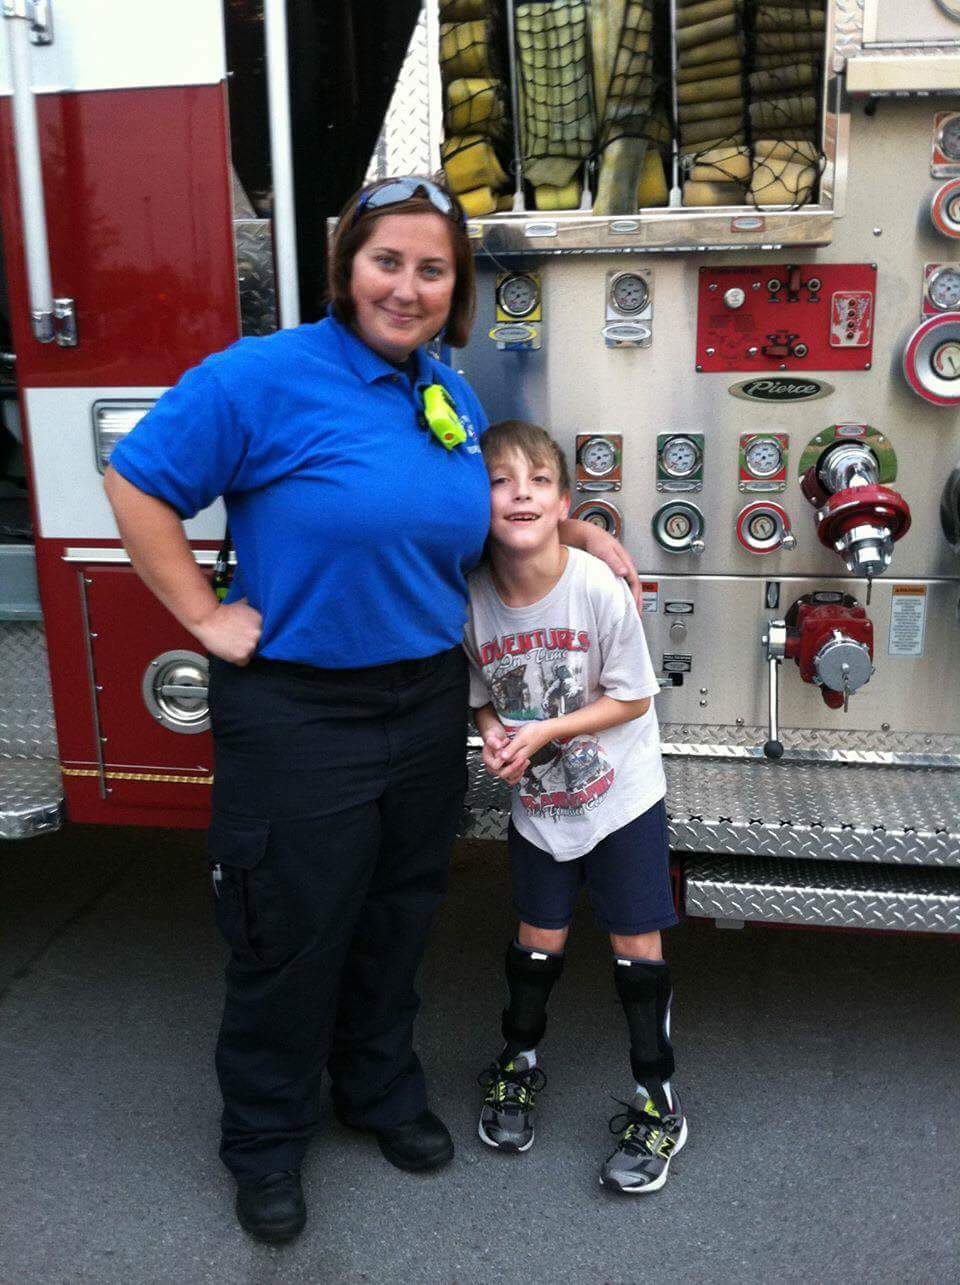 Murfreesboro Firefighters Running the Special Kids Race for a Special Kid | Murfreesboro Fire,Murfreesboro news,Murfreesboro,Special Kids